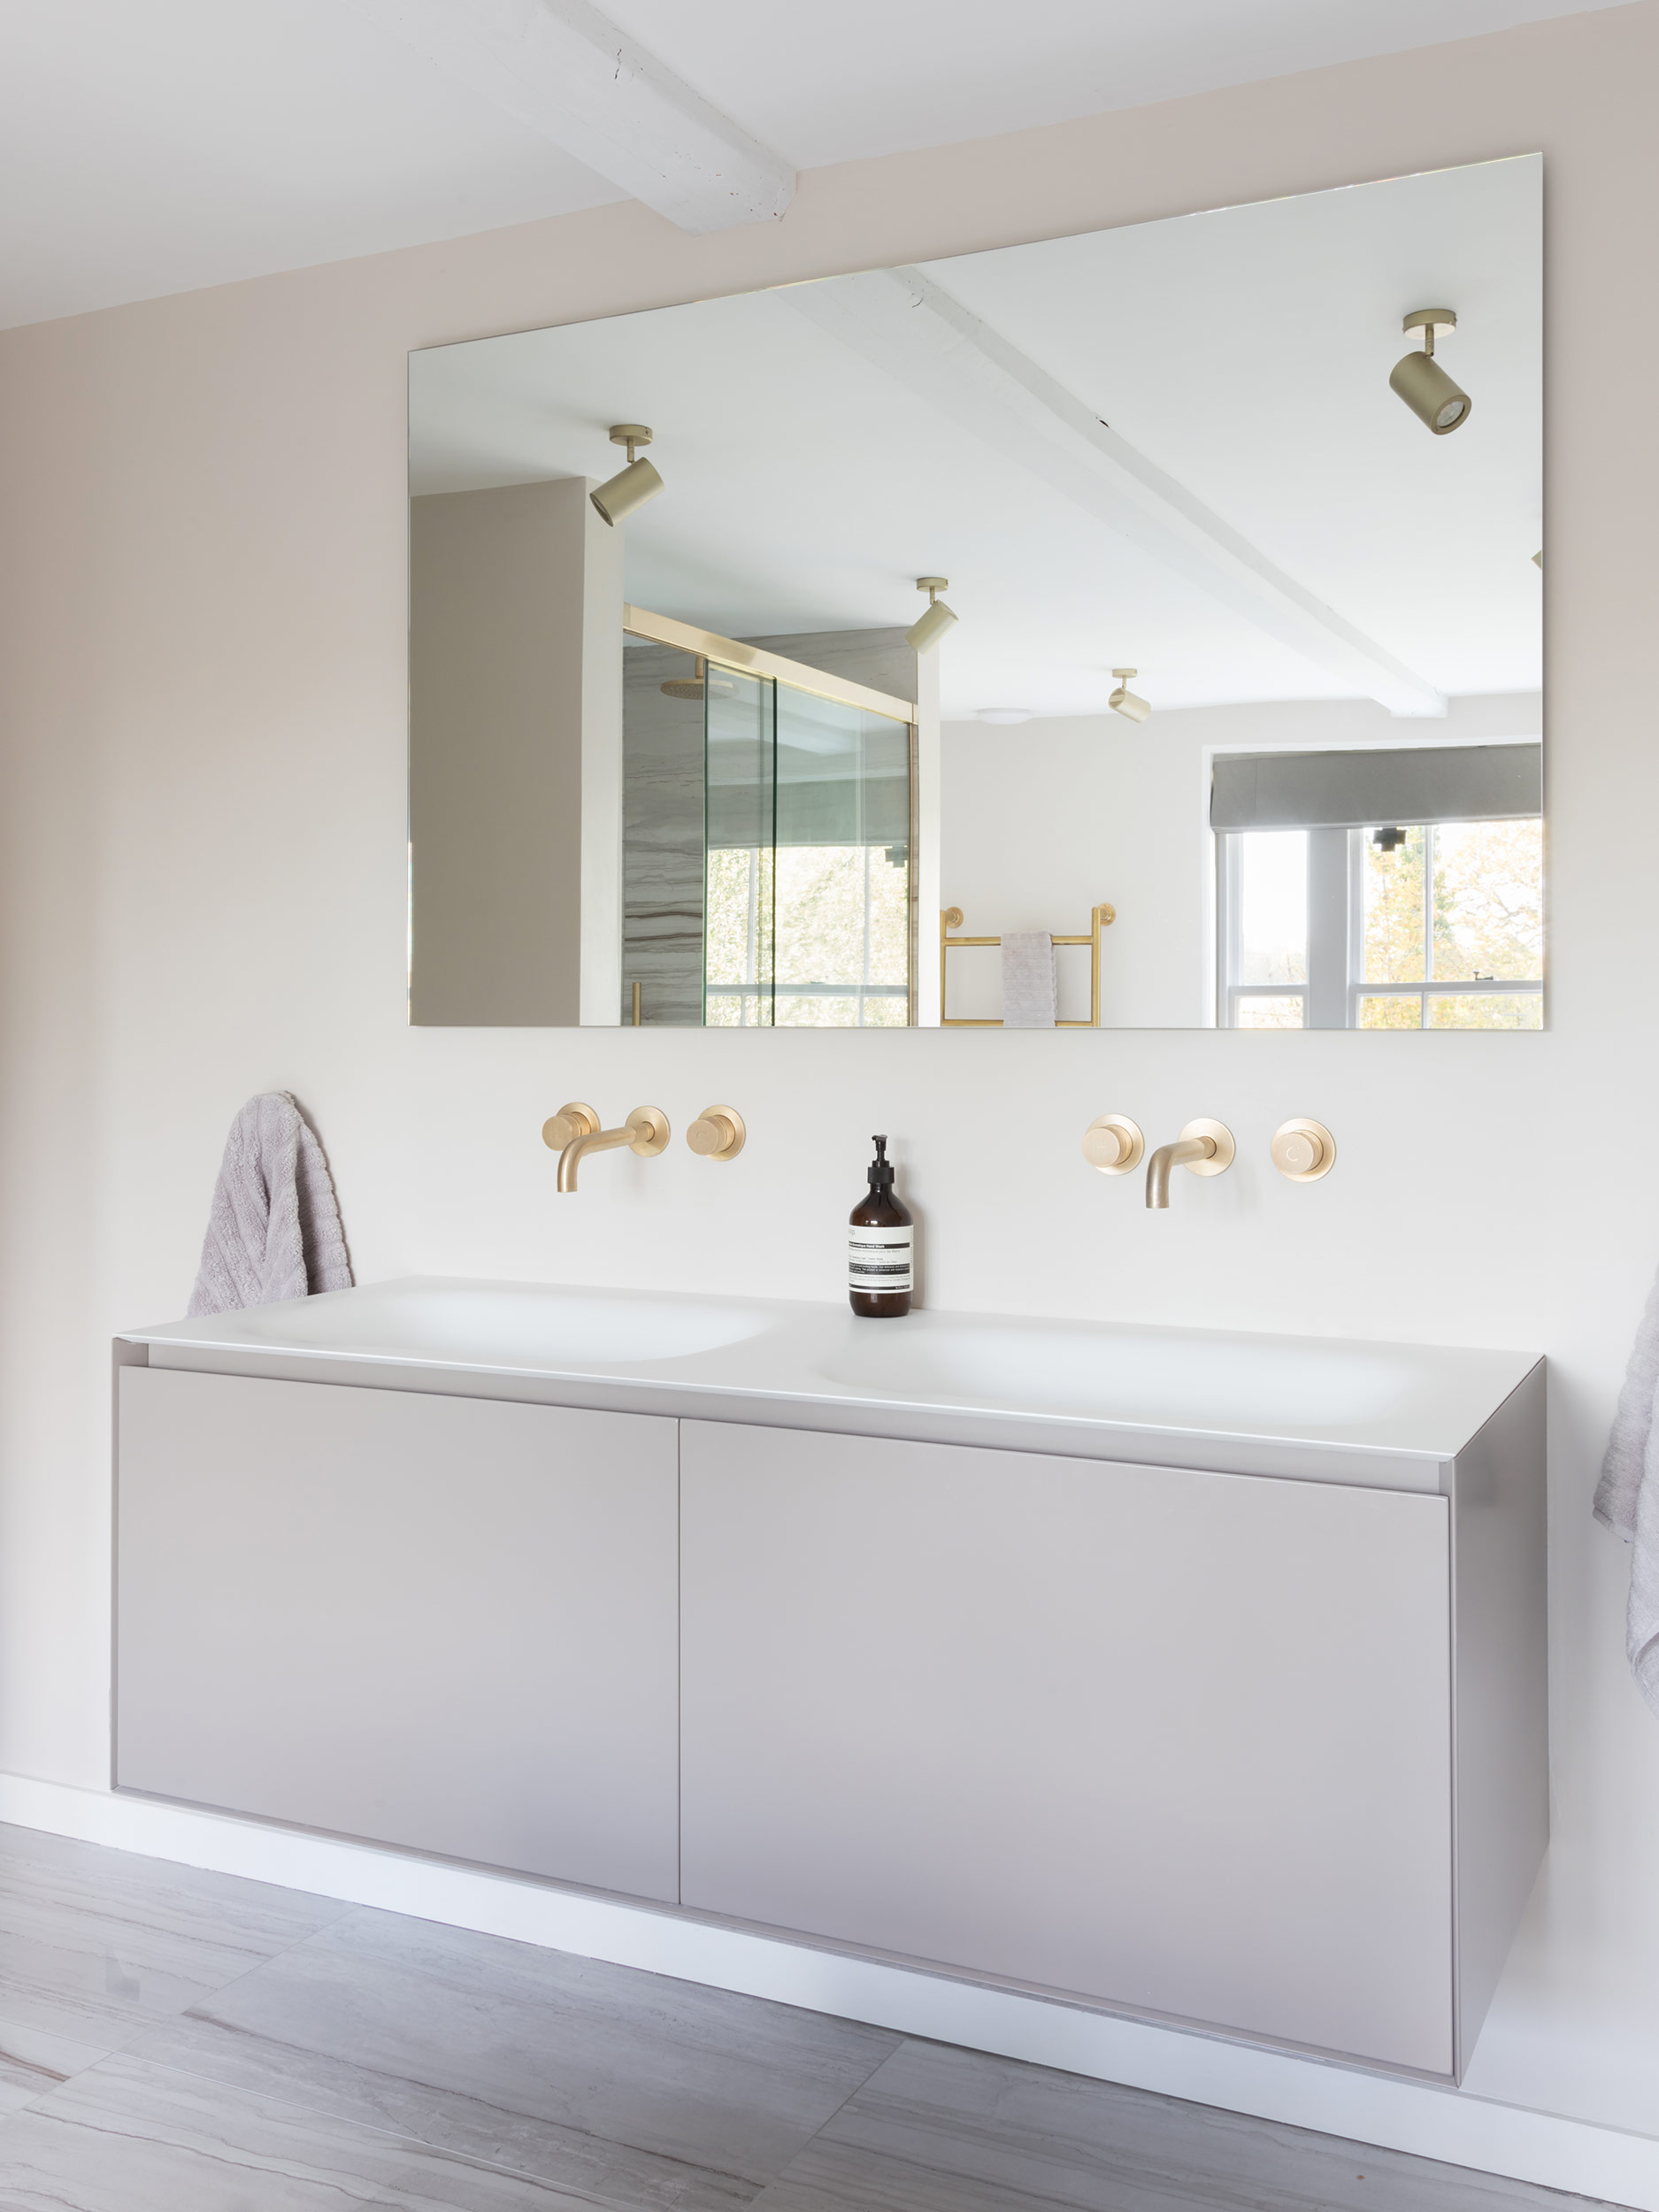 West One Bathrooms Case Studies The Master Suite 3b